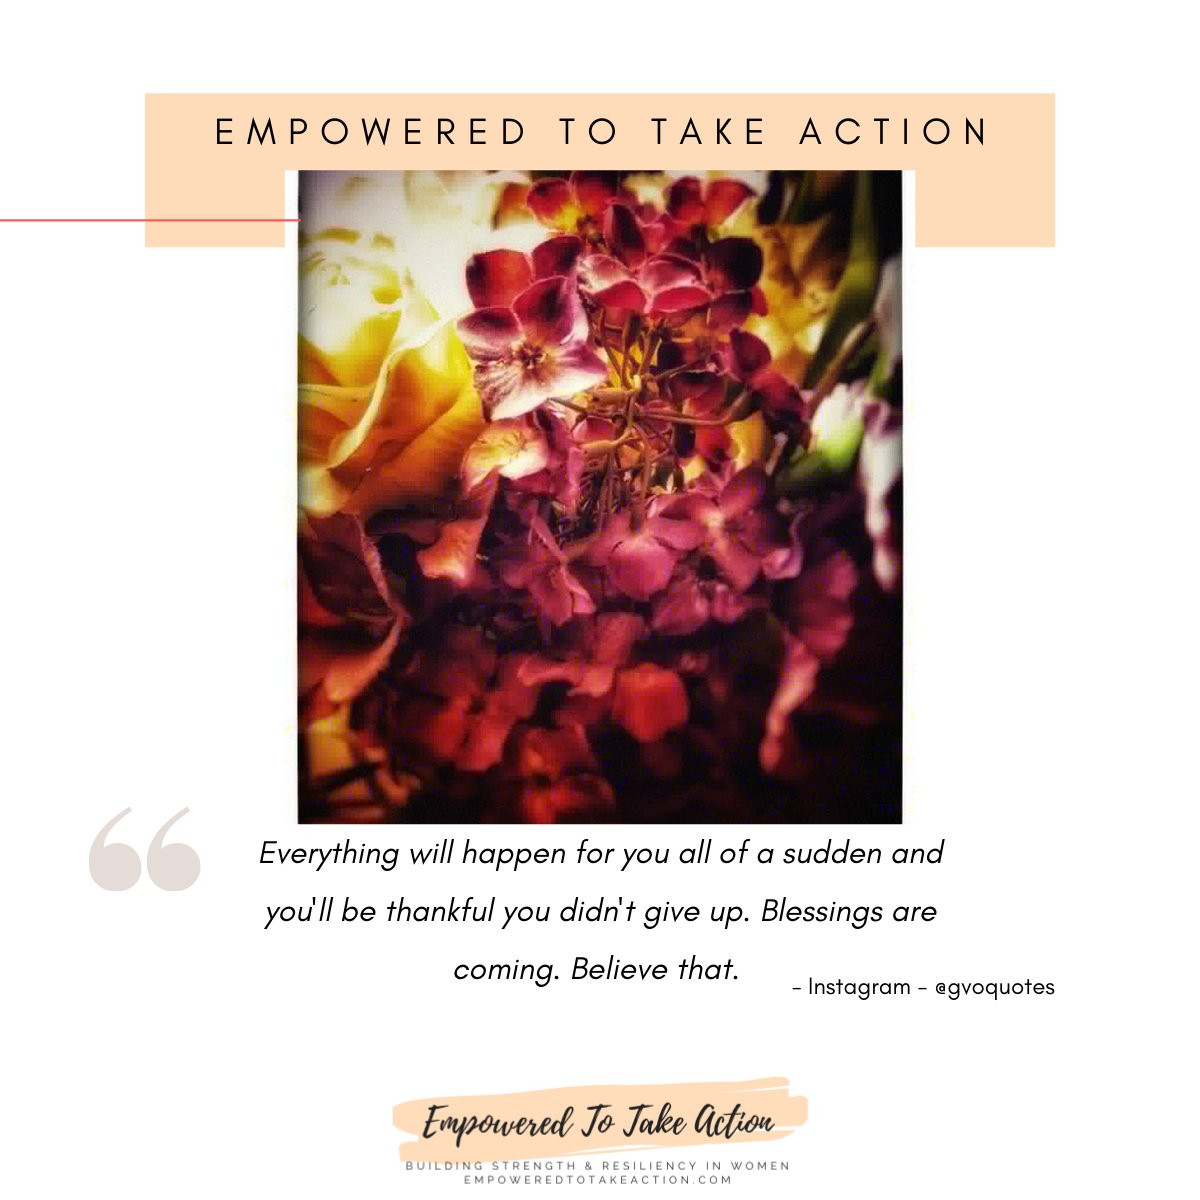 https://t.co/QB8oBrcg6d - Empowered To Take Action Virtual Masterminds starting soon. Take action today!   #inspiration #lifestyle #quote #love #entrepreneur #goals #quotes #photooftheday #business #quoteoftheday #strength https://t.co/cWfRM13s17